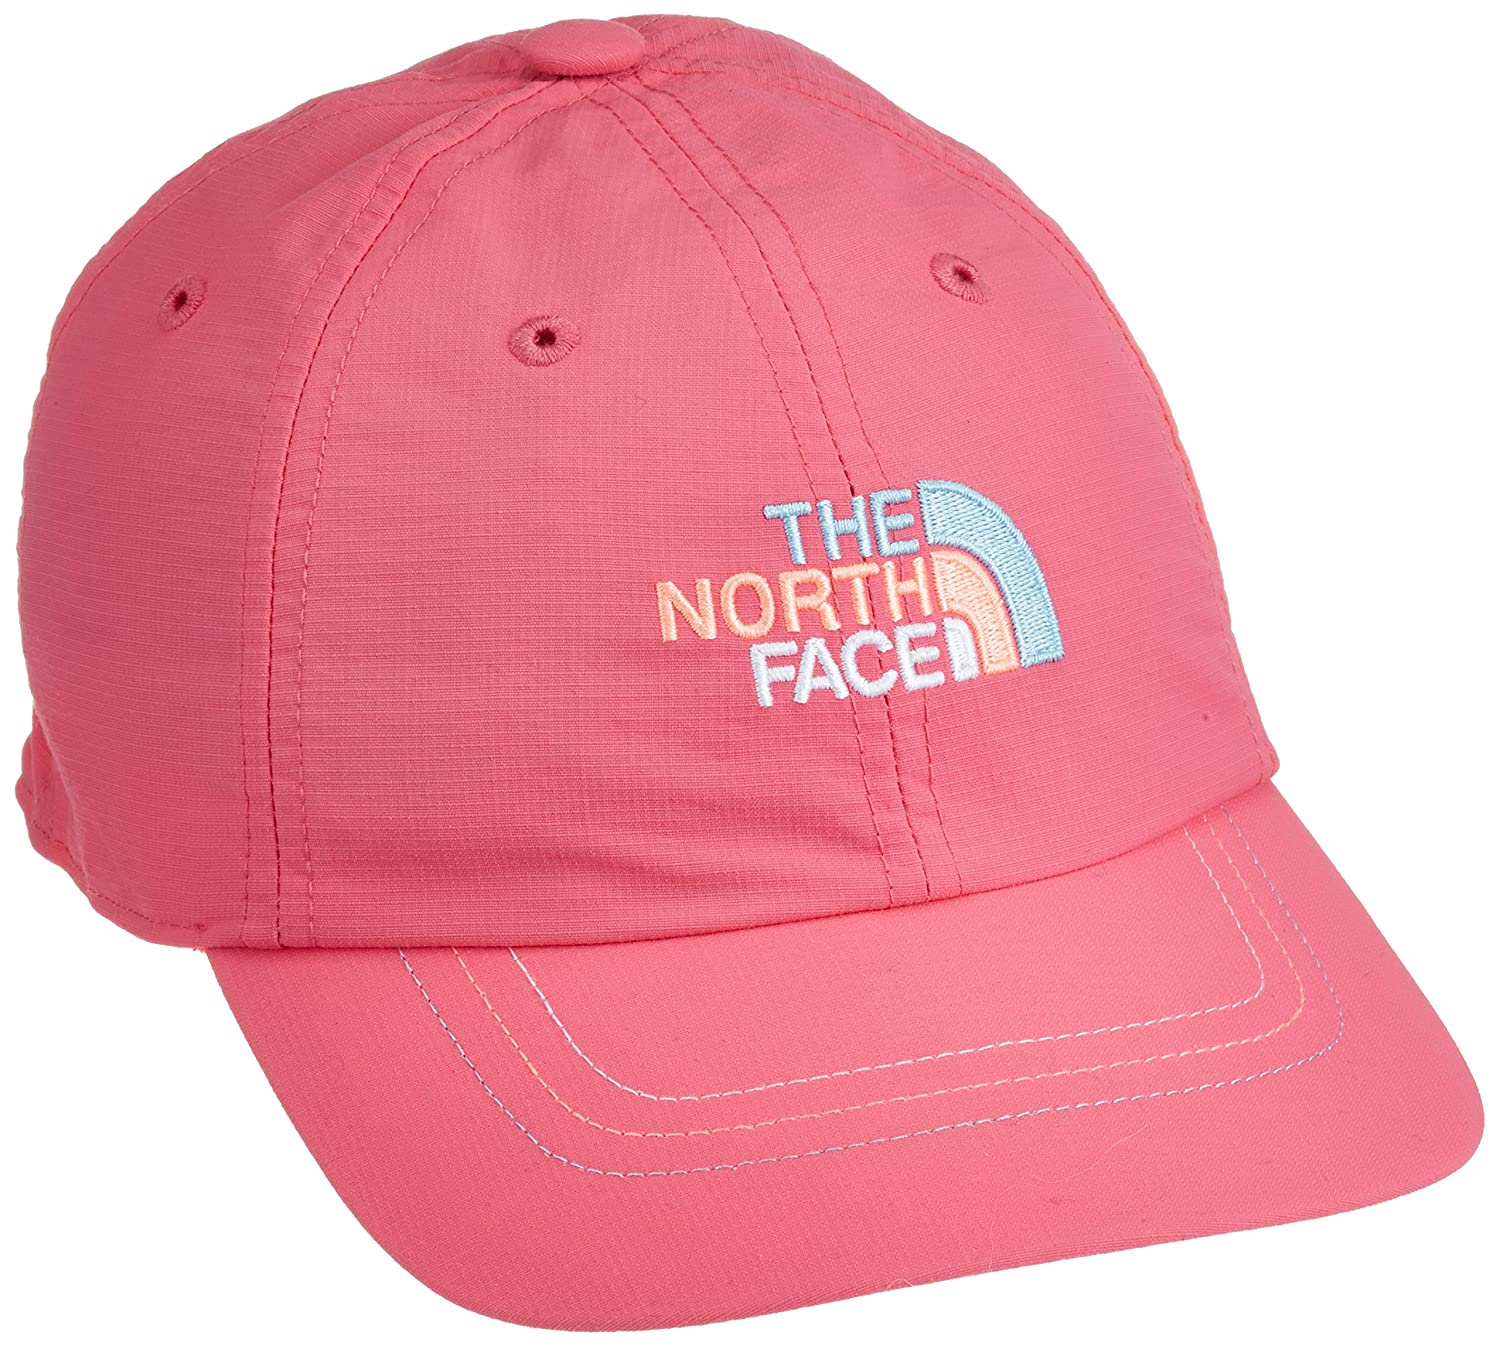 39d903a1695 THE NORTH FACE Kid s Youth Horizon Hat One Size NF00CF7LRW2-660 ...